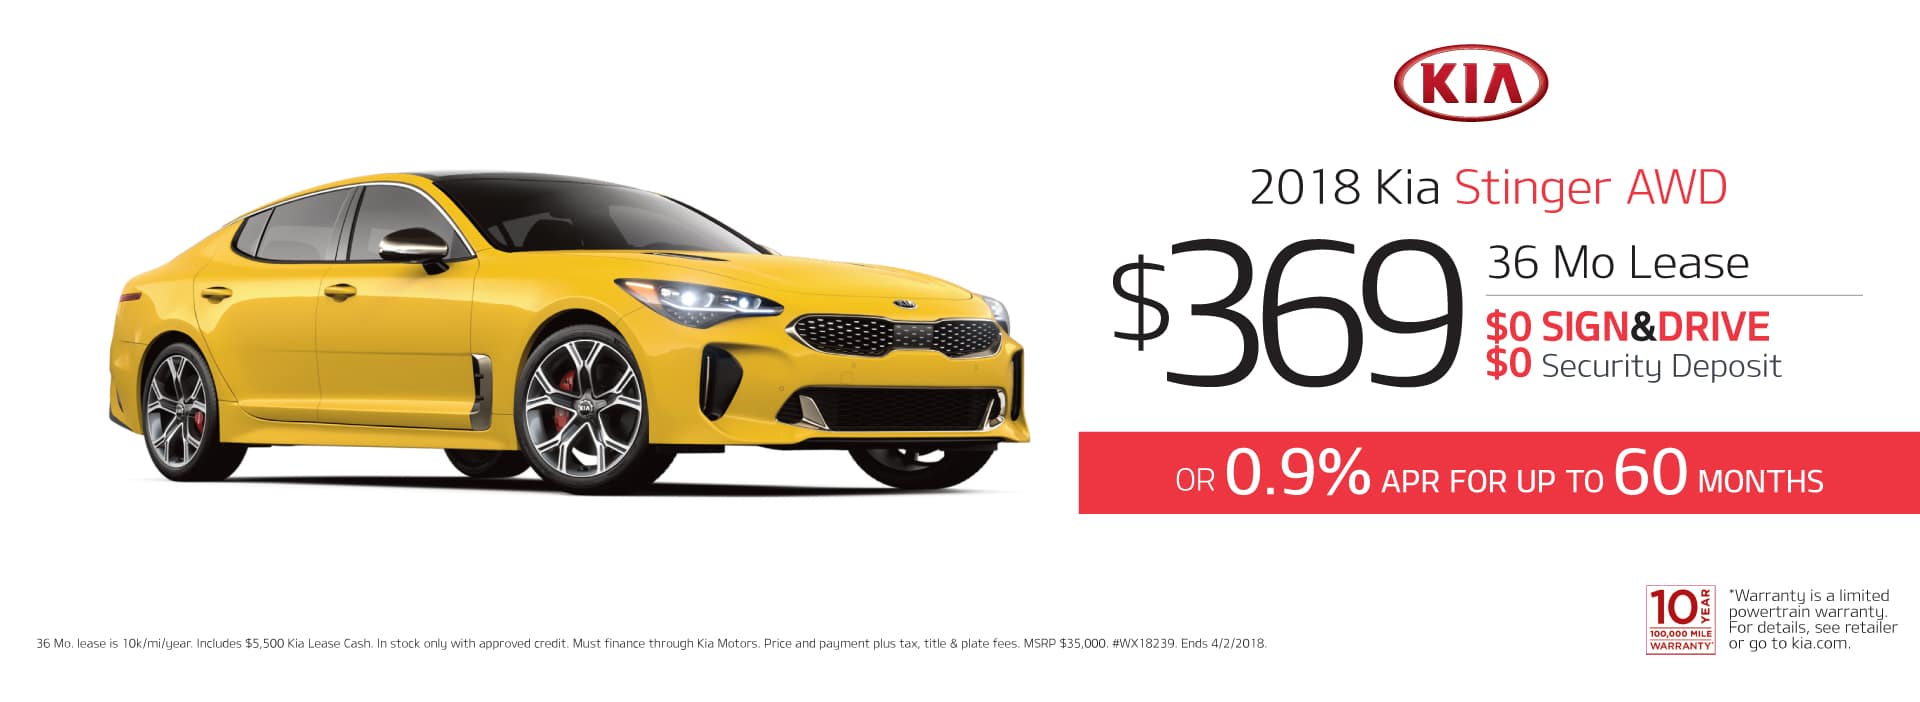 finance oem for lease htm groveport new incentives exterior offers kia meet the and oh sale forte columbus gallery